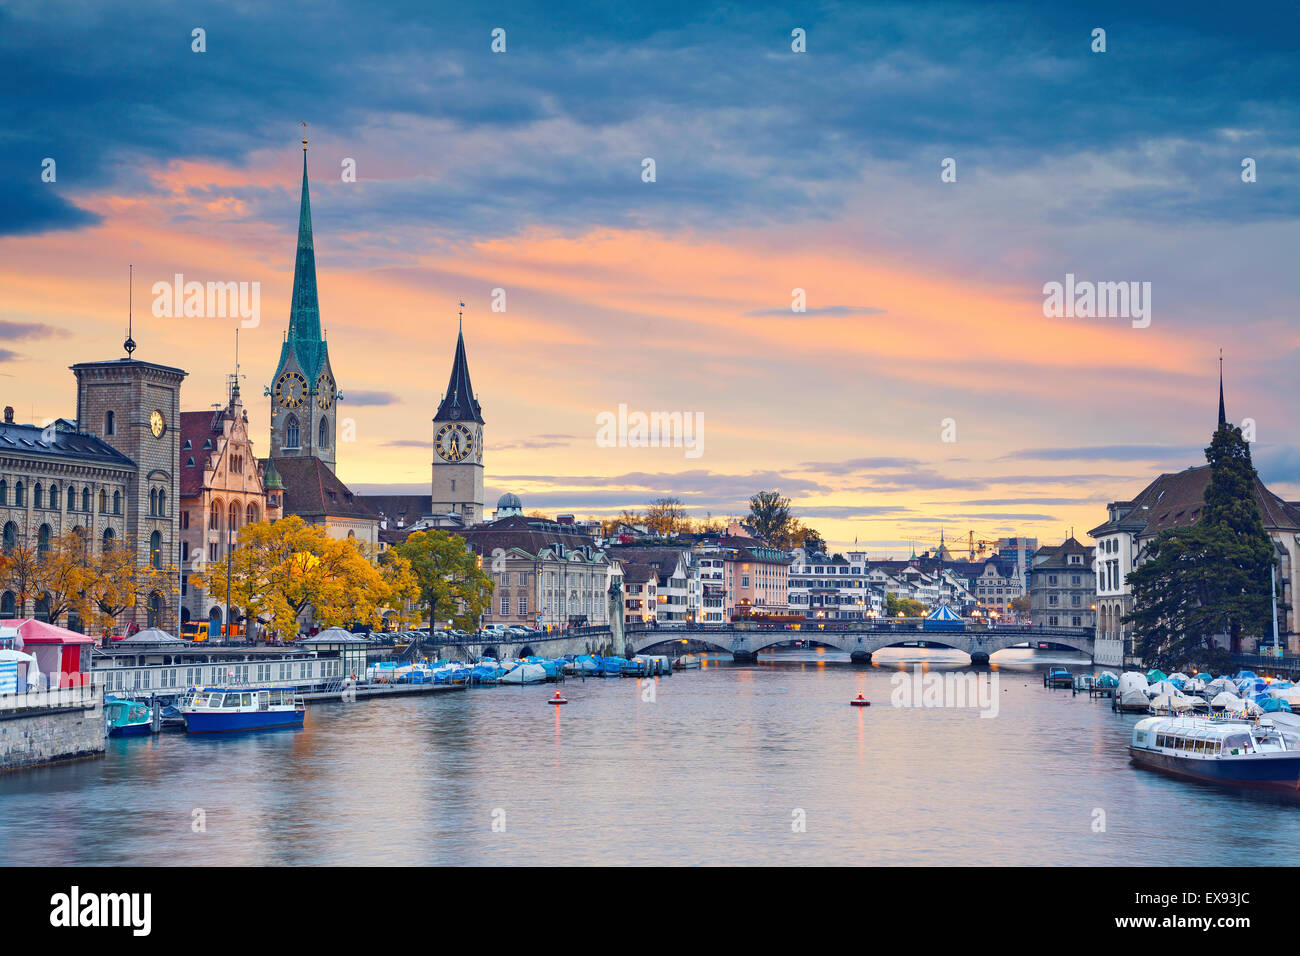 Zurich. Image of Zurich, Switzerland during autumn sunset. - Stock Image